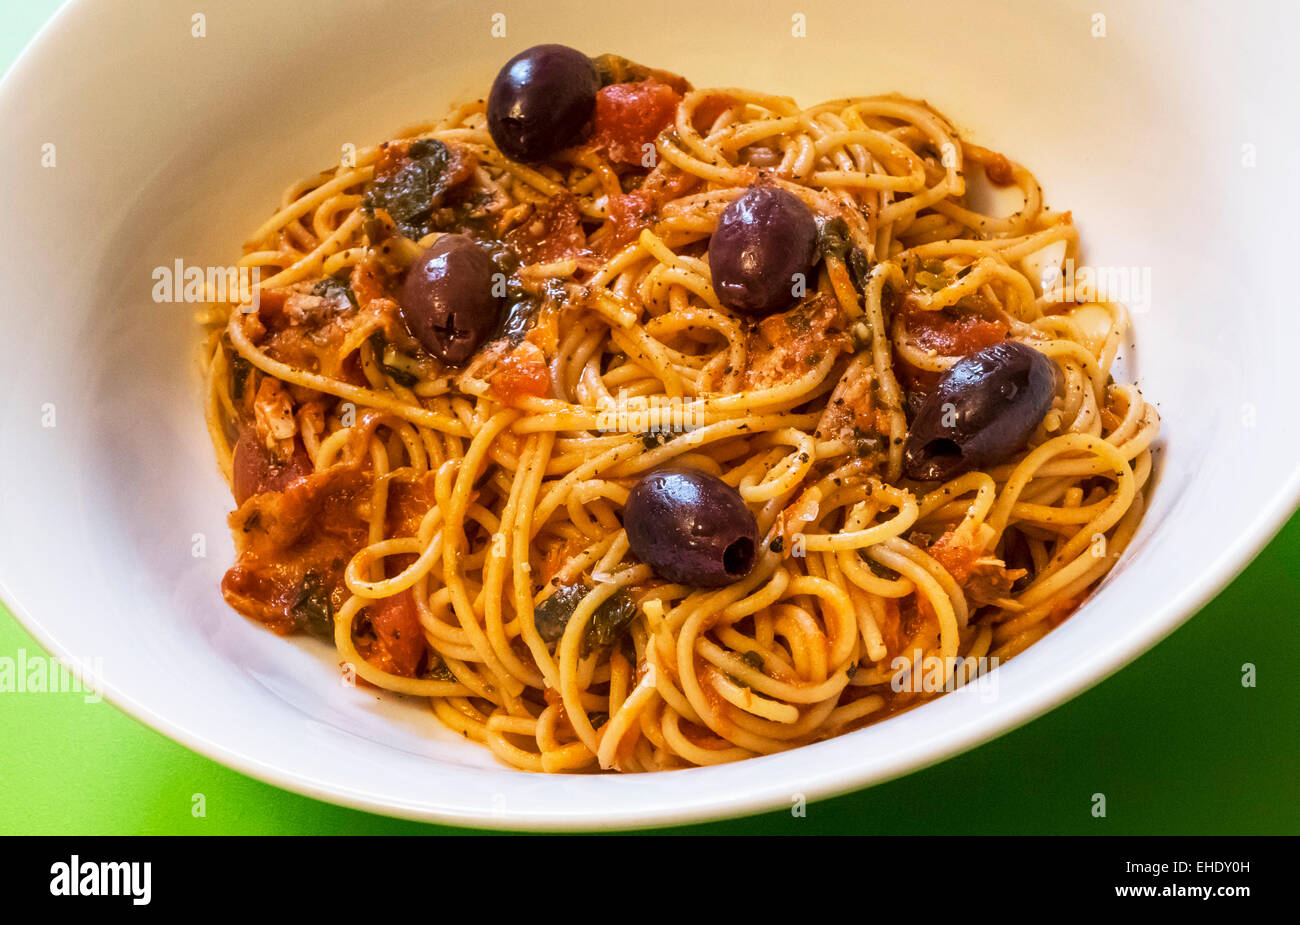 a-bowl-of-spaghetti-with-tuna-and-olives